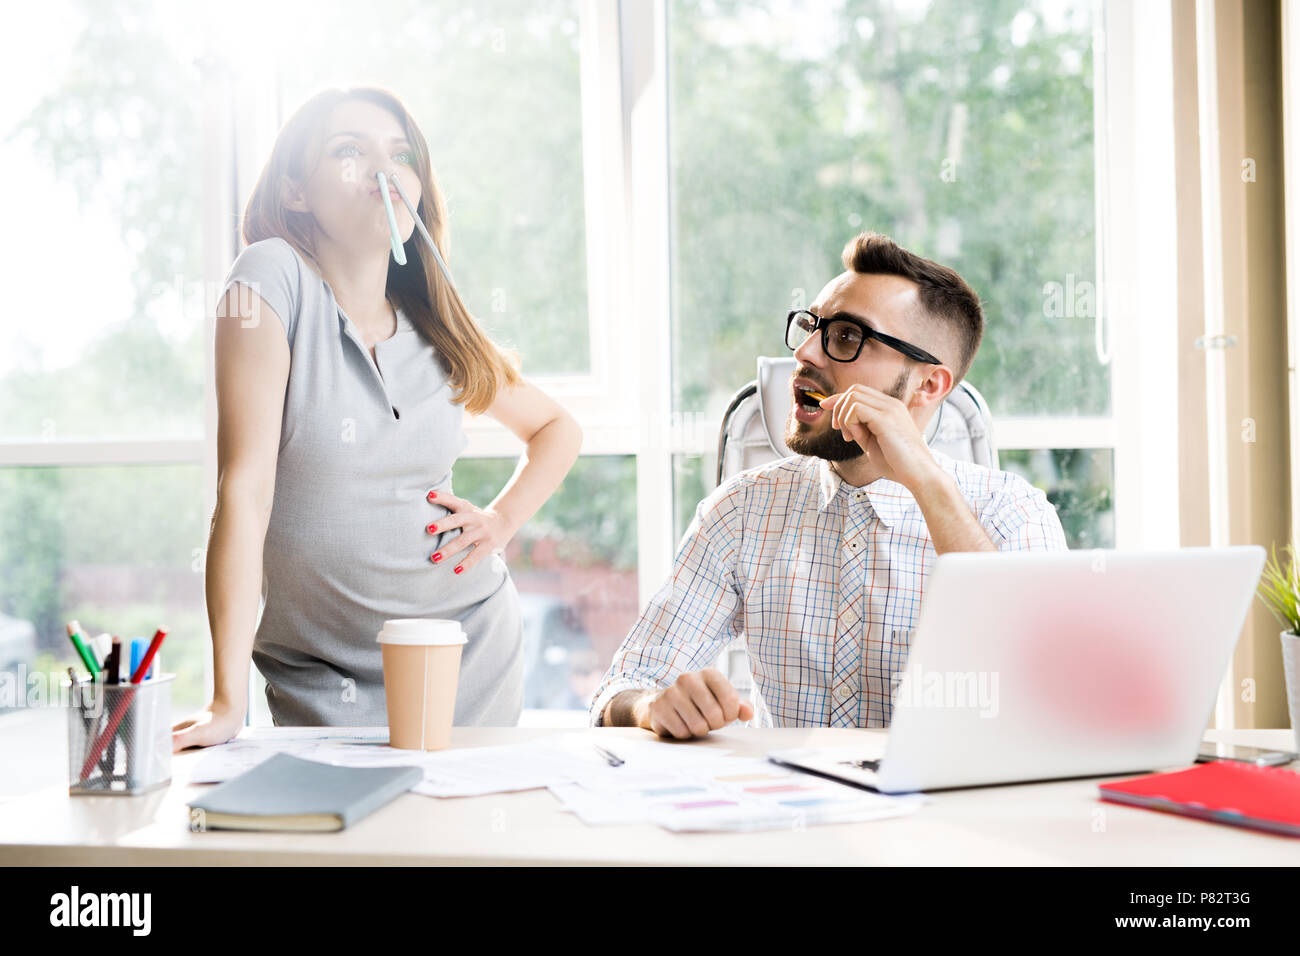 Business People Having Fun in Office - Stock Image